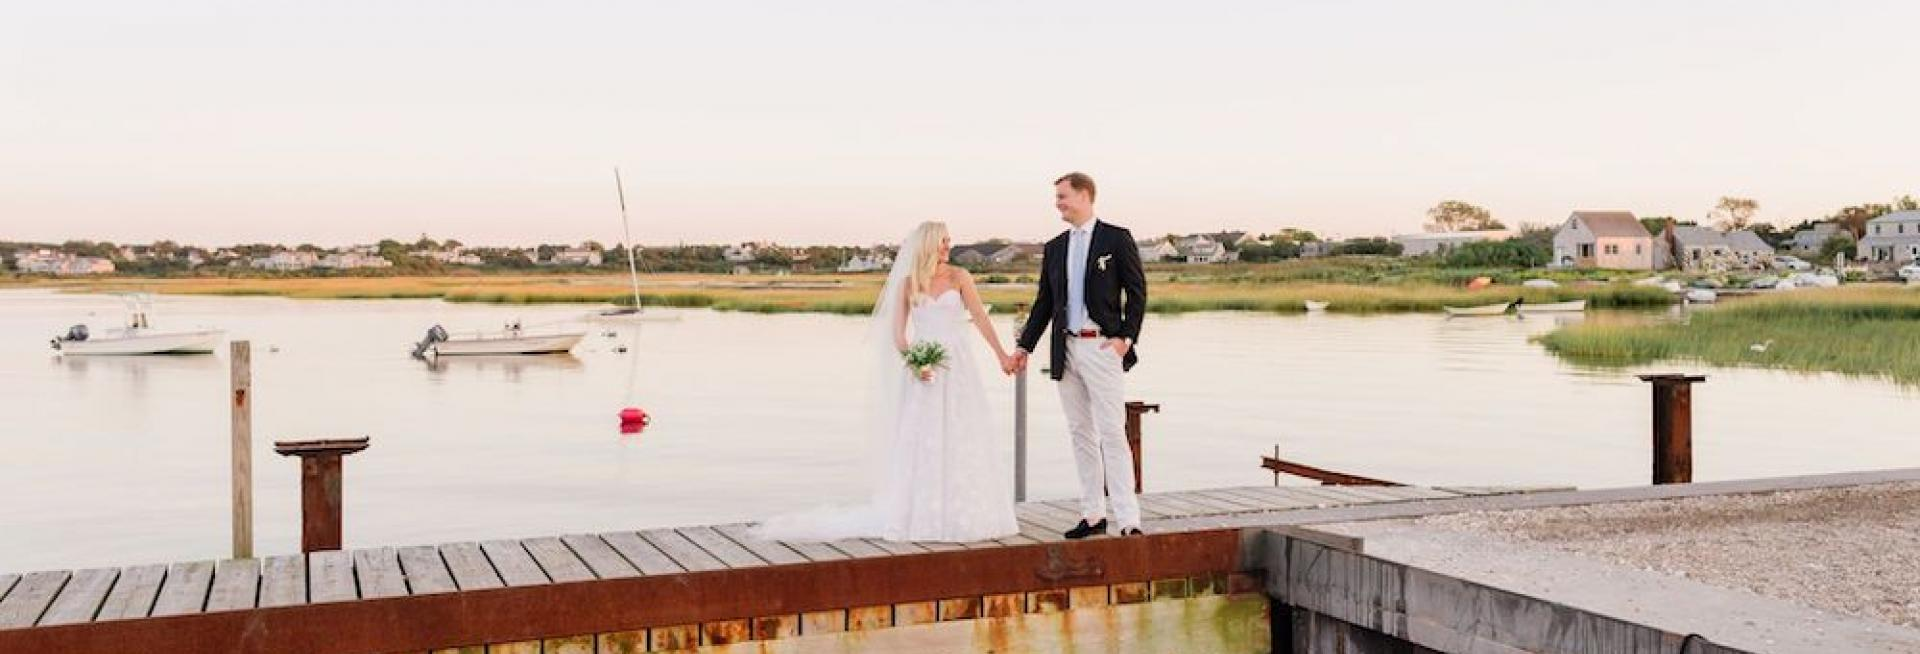 nantucket wedding photo